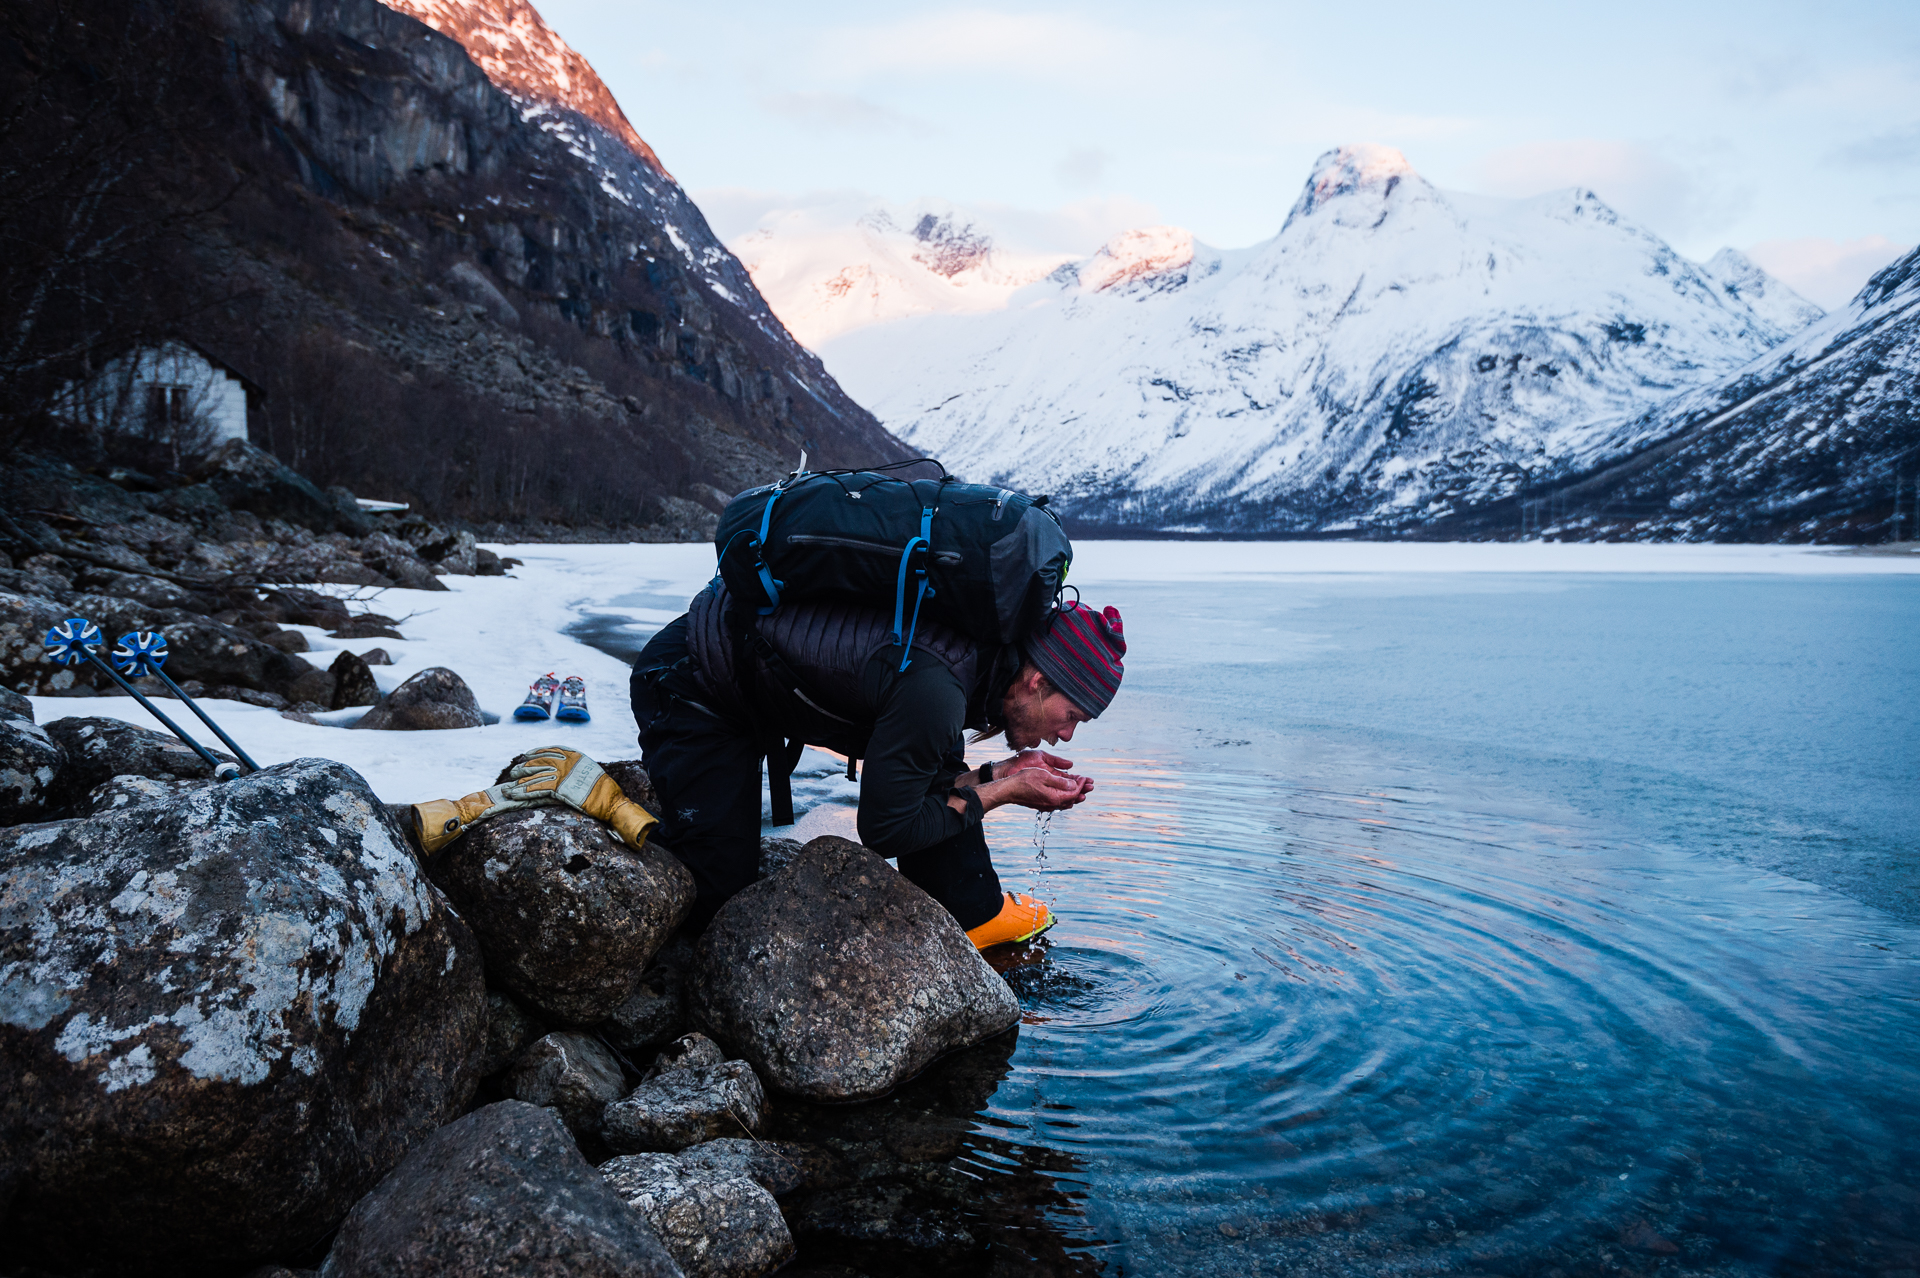 Chad Sayers in the abundant natural resources of Northern Norway.